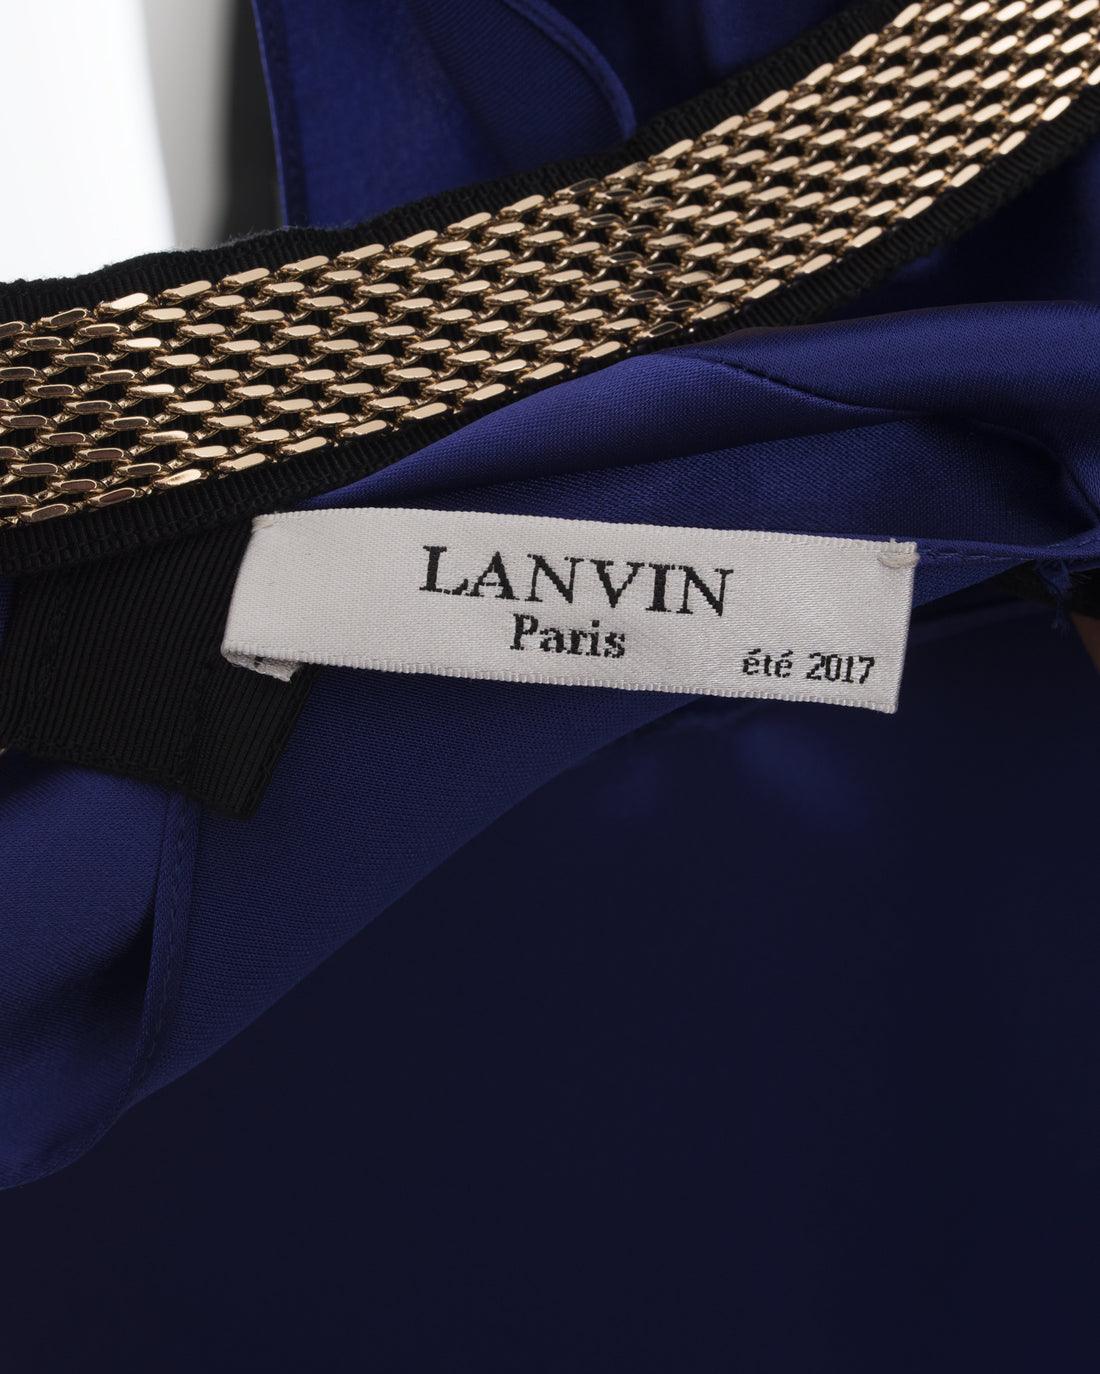 Lanvin Purple Satin Bias Top with Gold Chain Back - 6